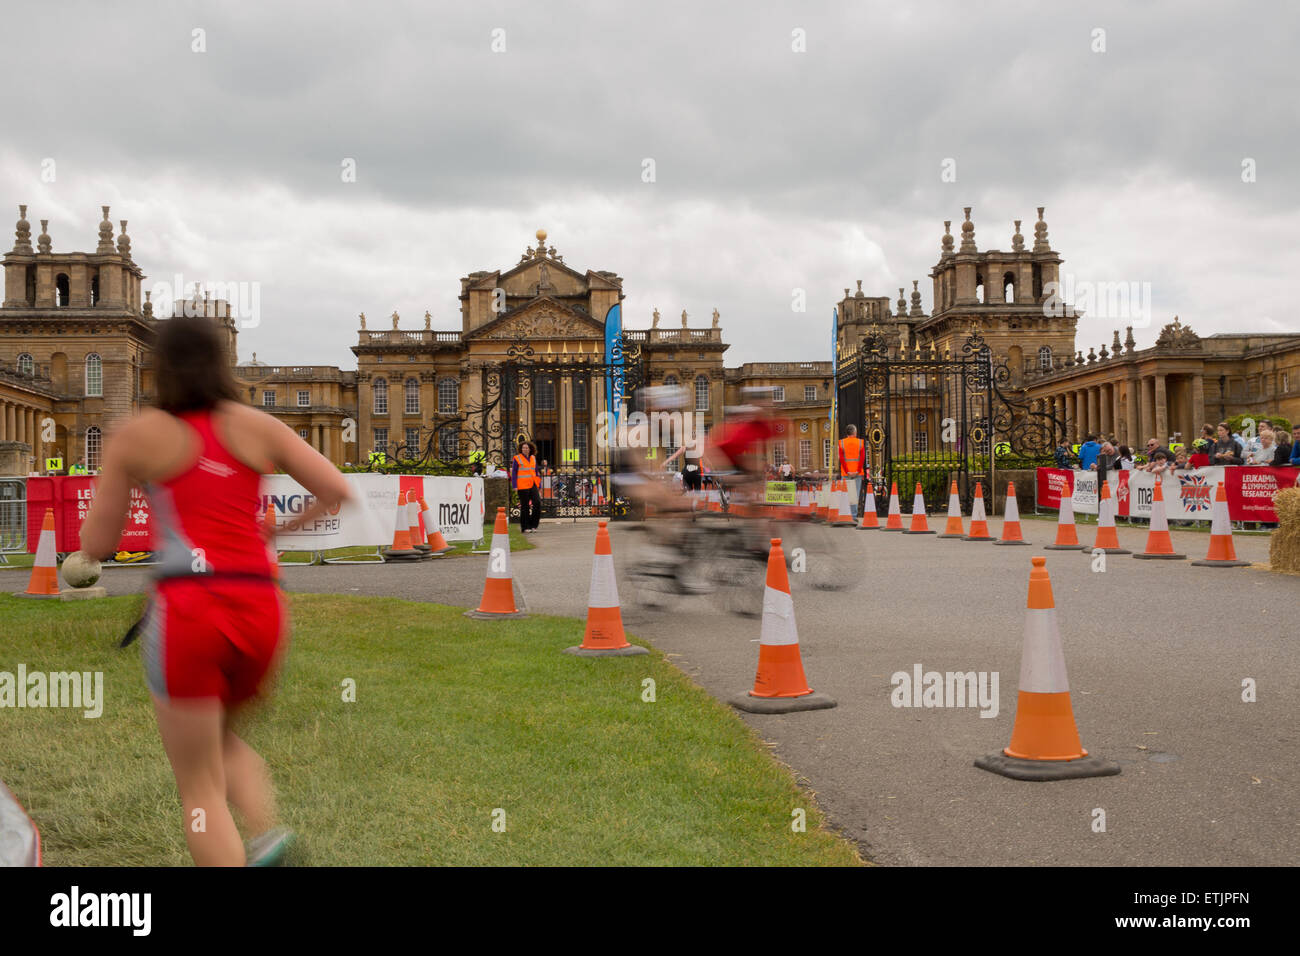 Oxford, UK. 14th June, 2015. Blenheim Palace Triathlon. Credit:  Pete Lusabia/Alamy Live News - Stock Image